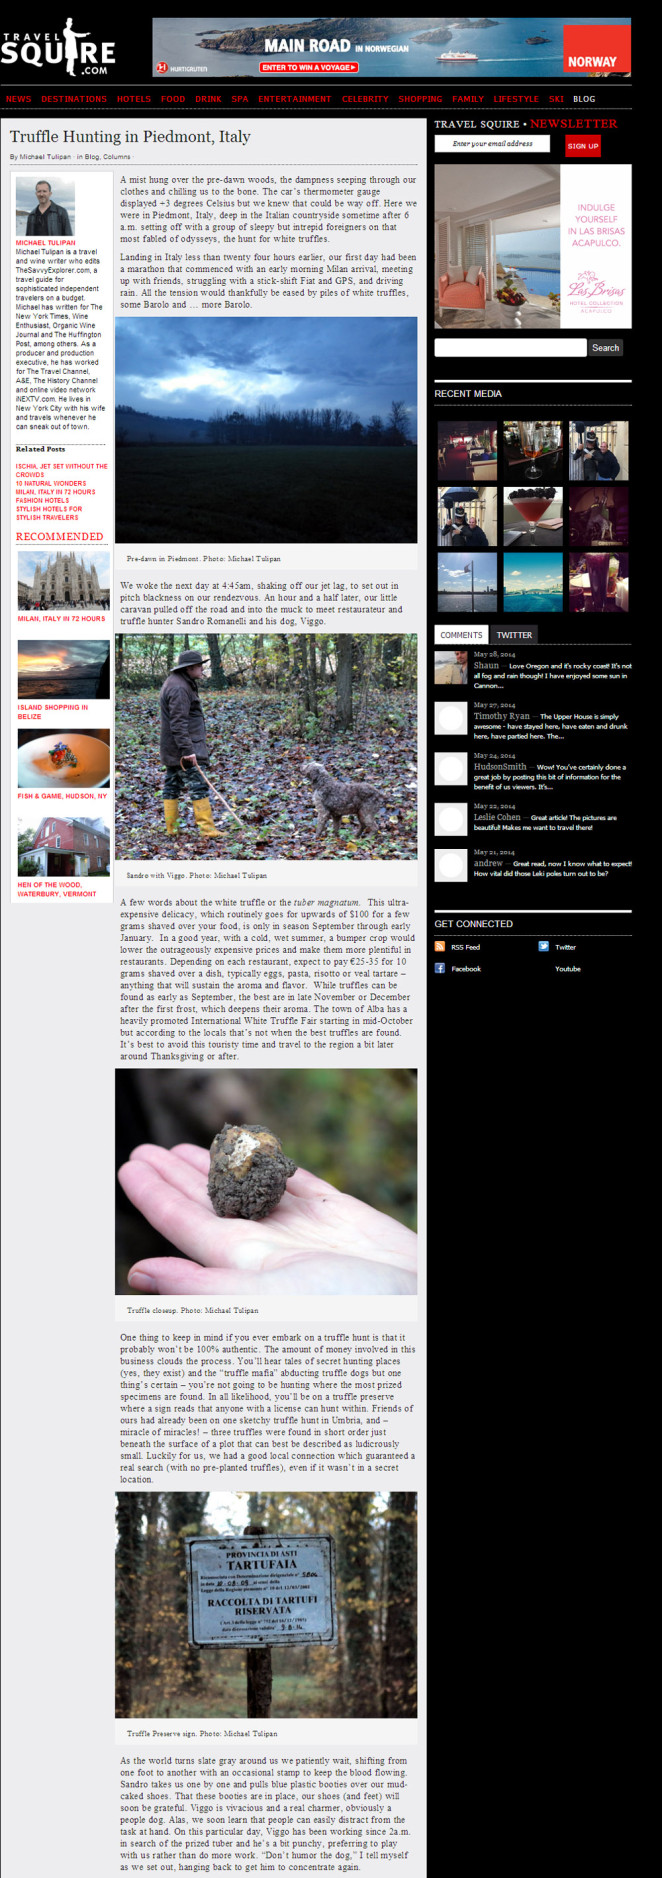 Travel Squire Truffle Hunting